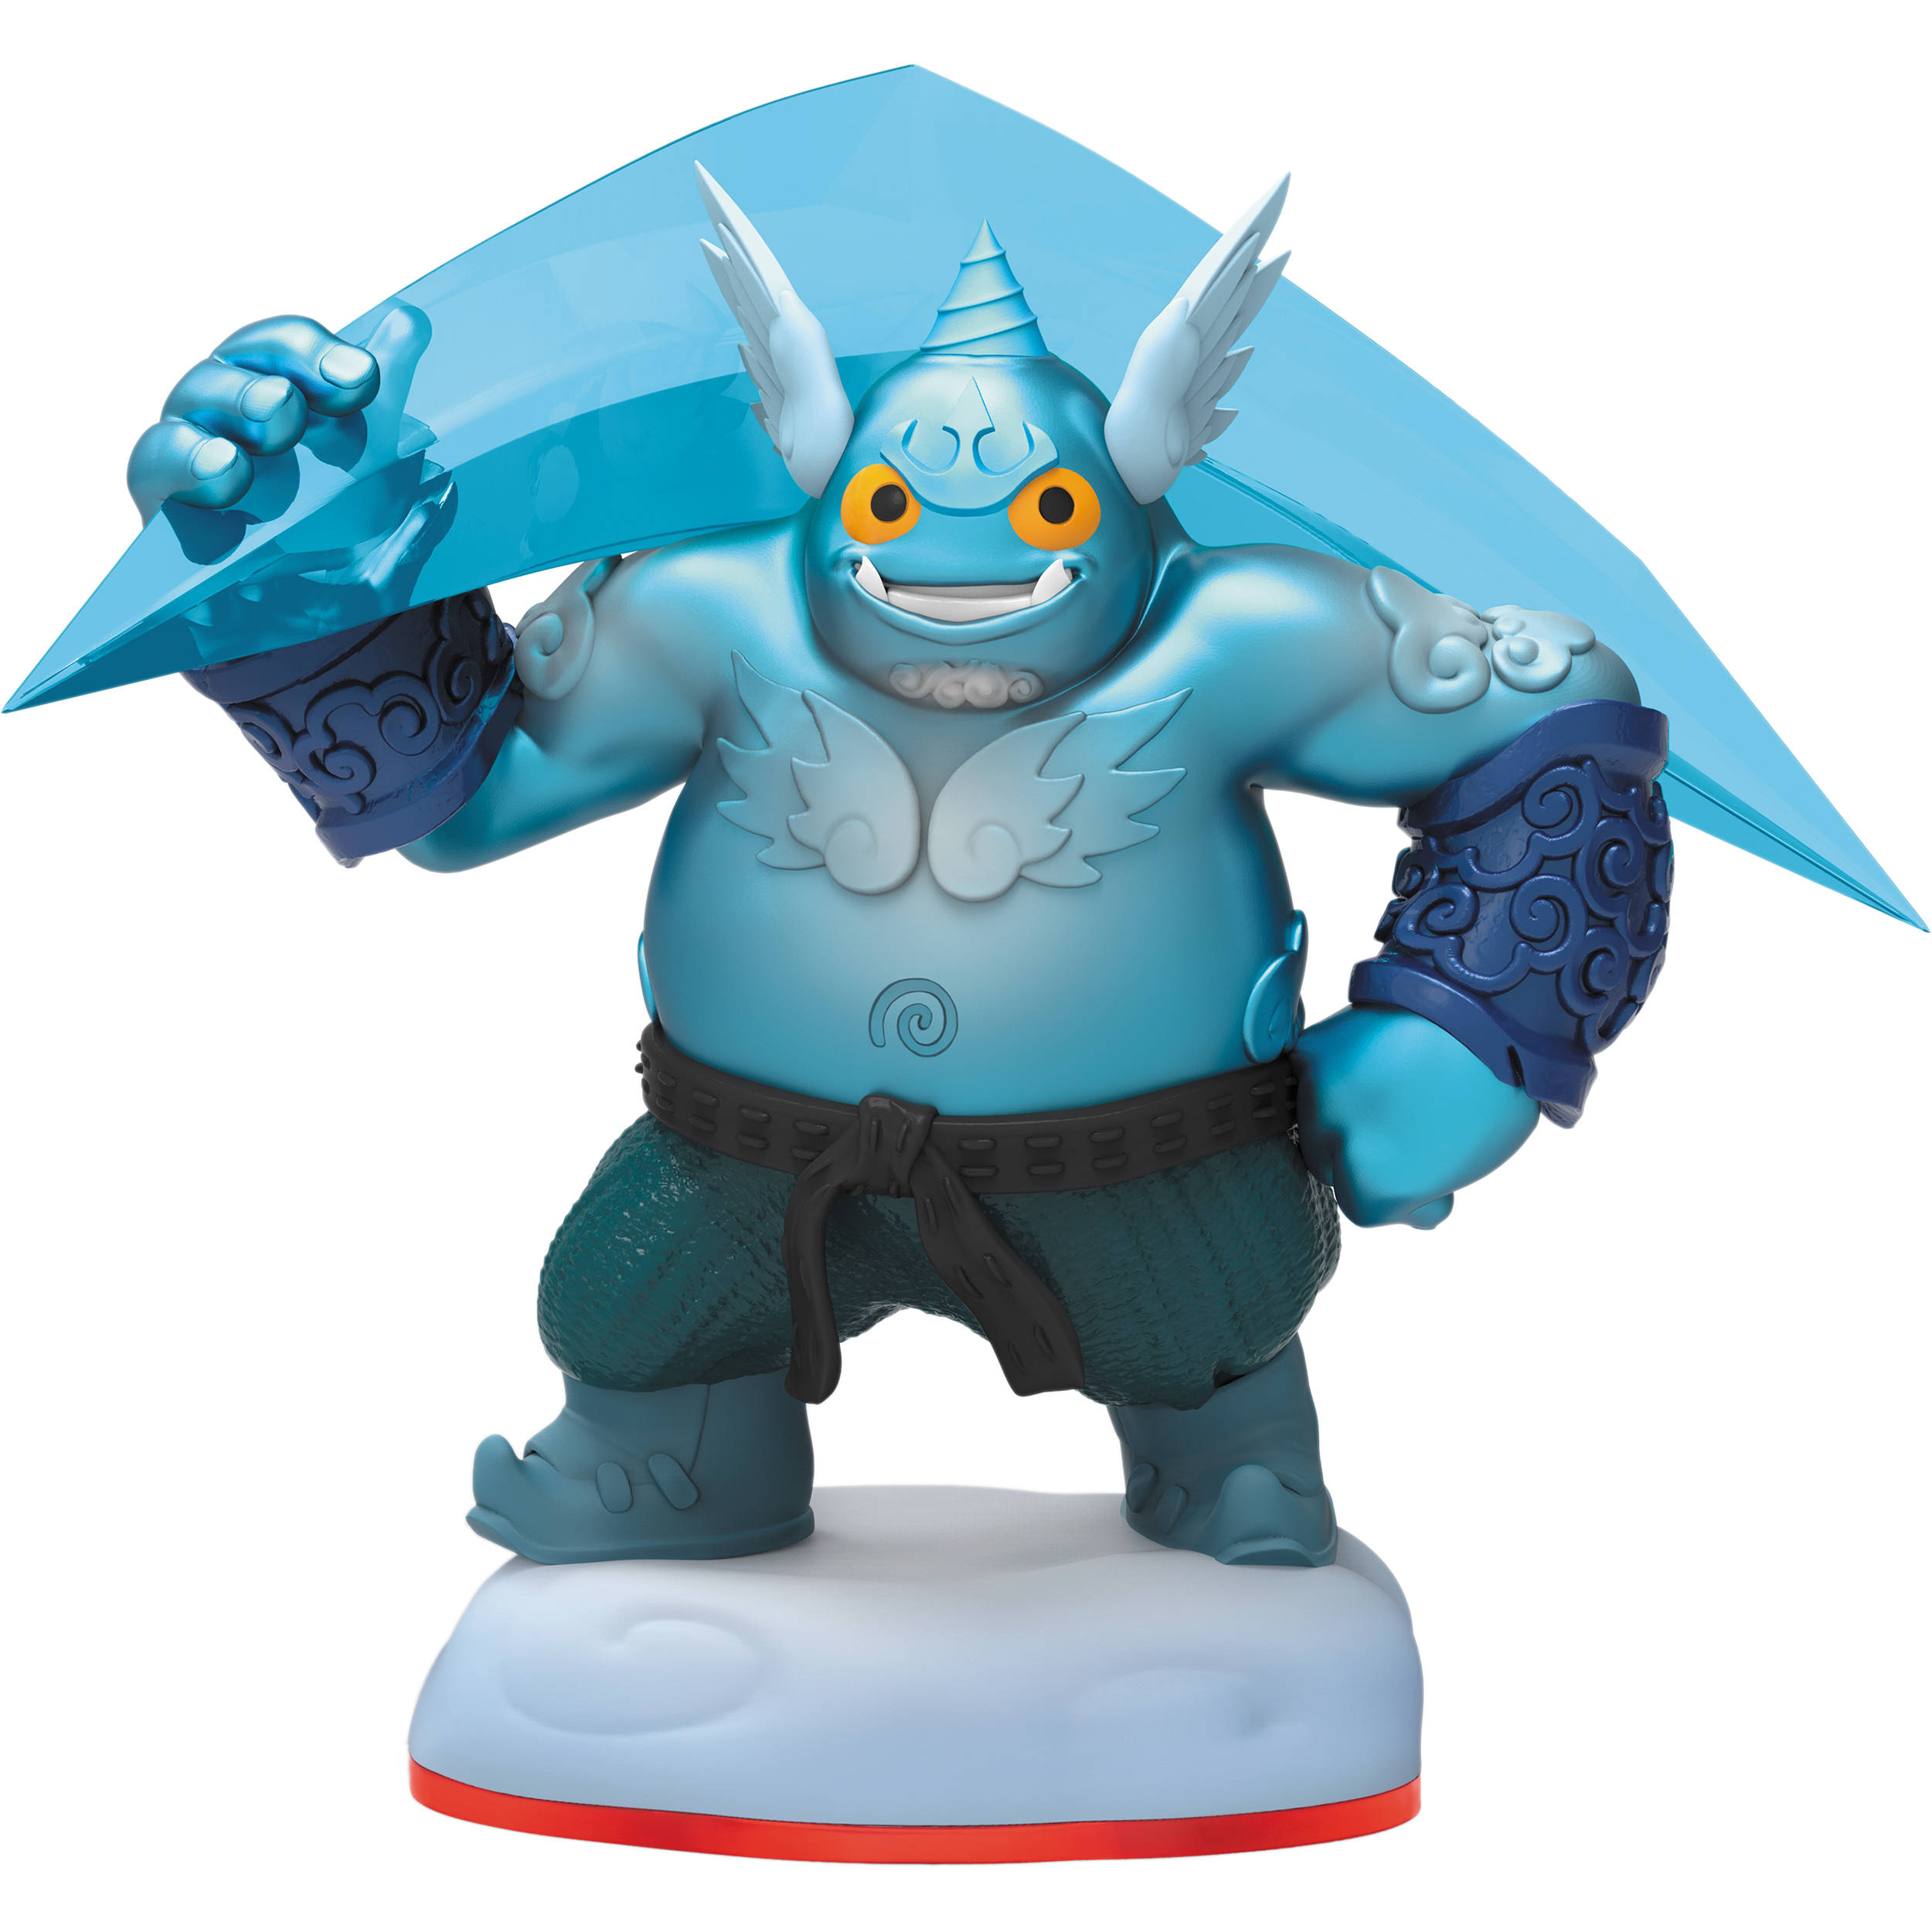 Activision Gusto Skylanders Trap Team Figure 87000 B&H Photo